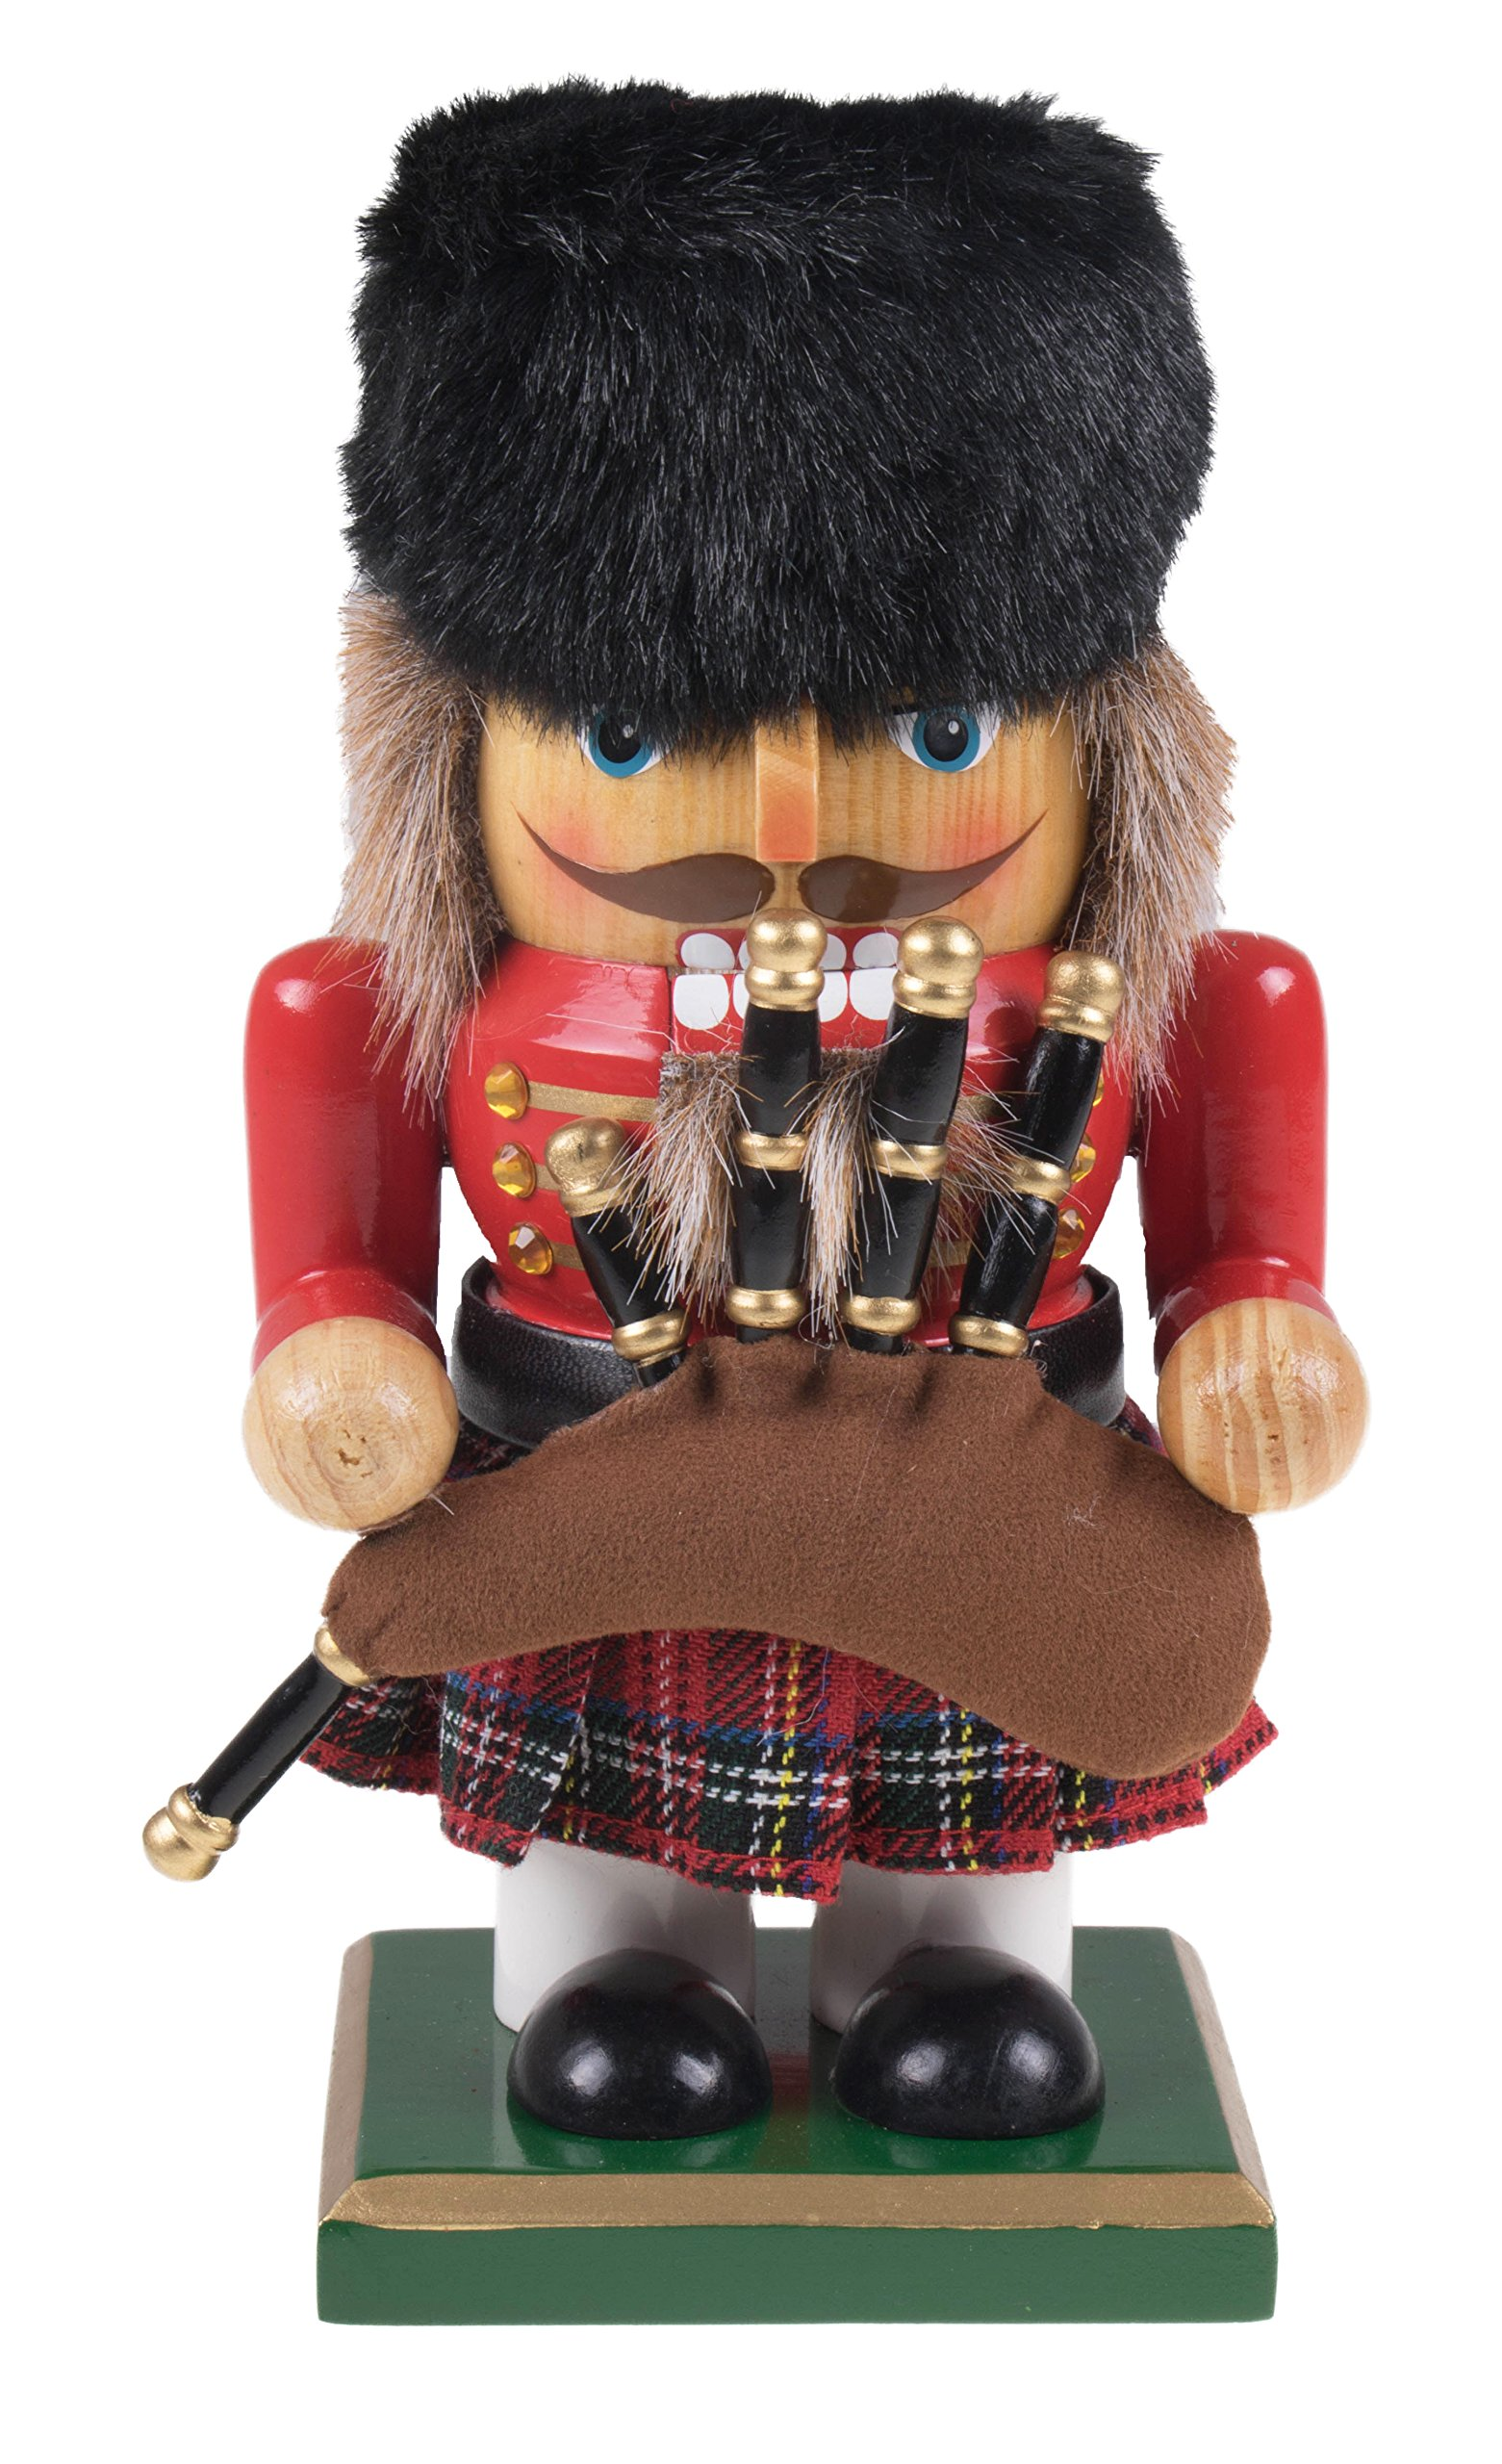 Traditional Chubby Scottish Nutcracker by Clever Creations | Collectible Short Nutcracker | Plaid Skirt & Bagpipes | Christmas Decor | Perfect for Shelves & Tables | 100% Wood | 7'' Tall